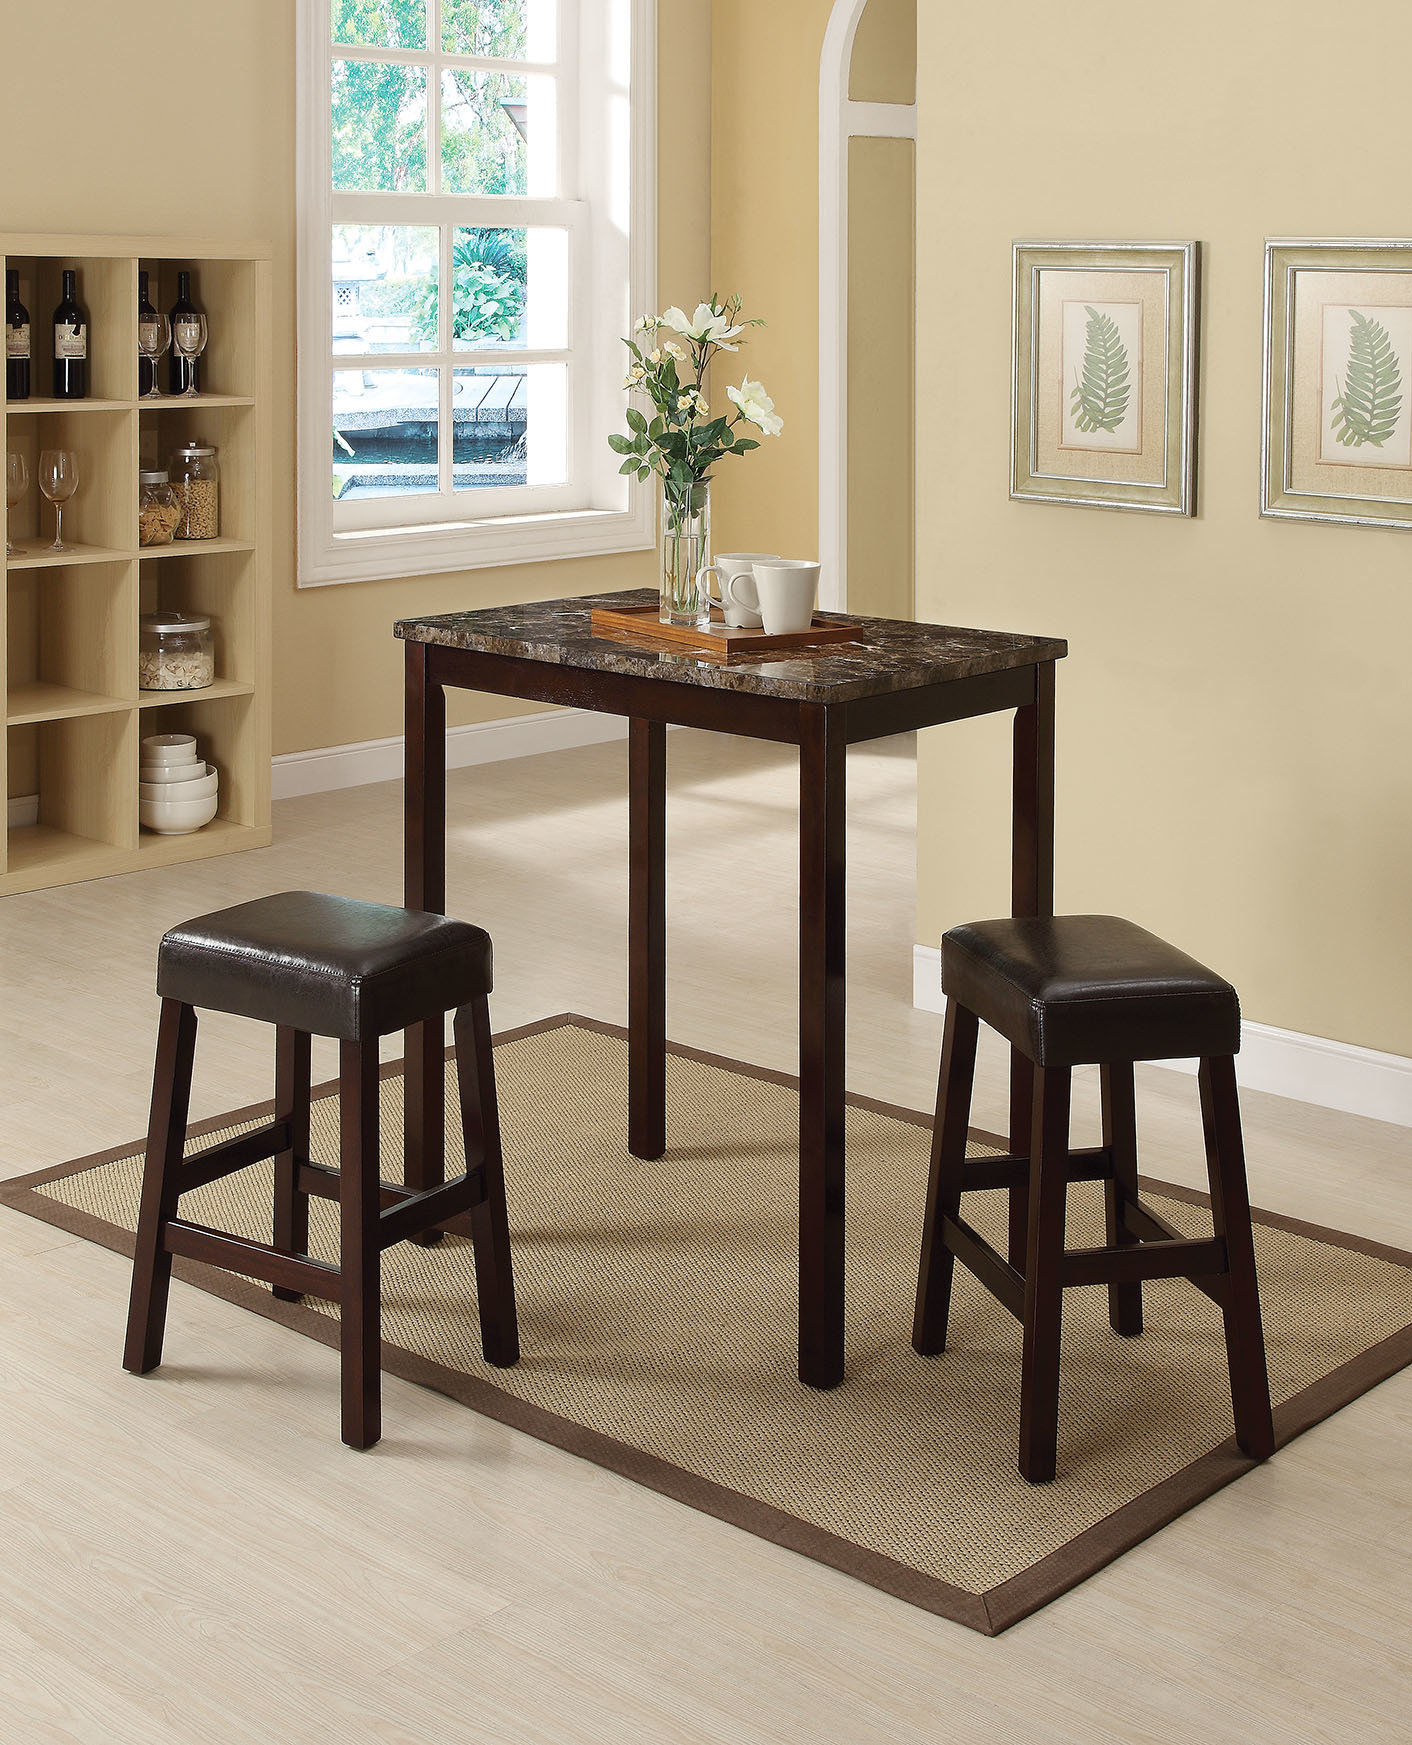 Askern 3 Piece Counter Height Dining Set In Best And Newest Mitzel 3 Piece Dining Sets (Image 1 of 20)